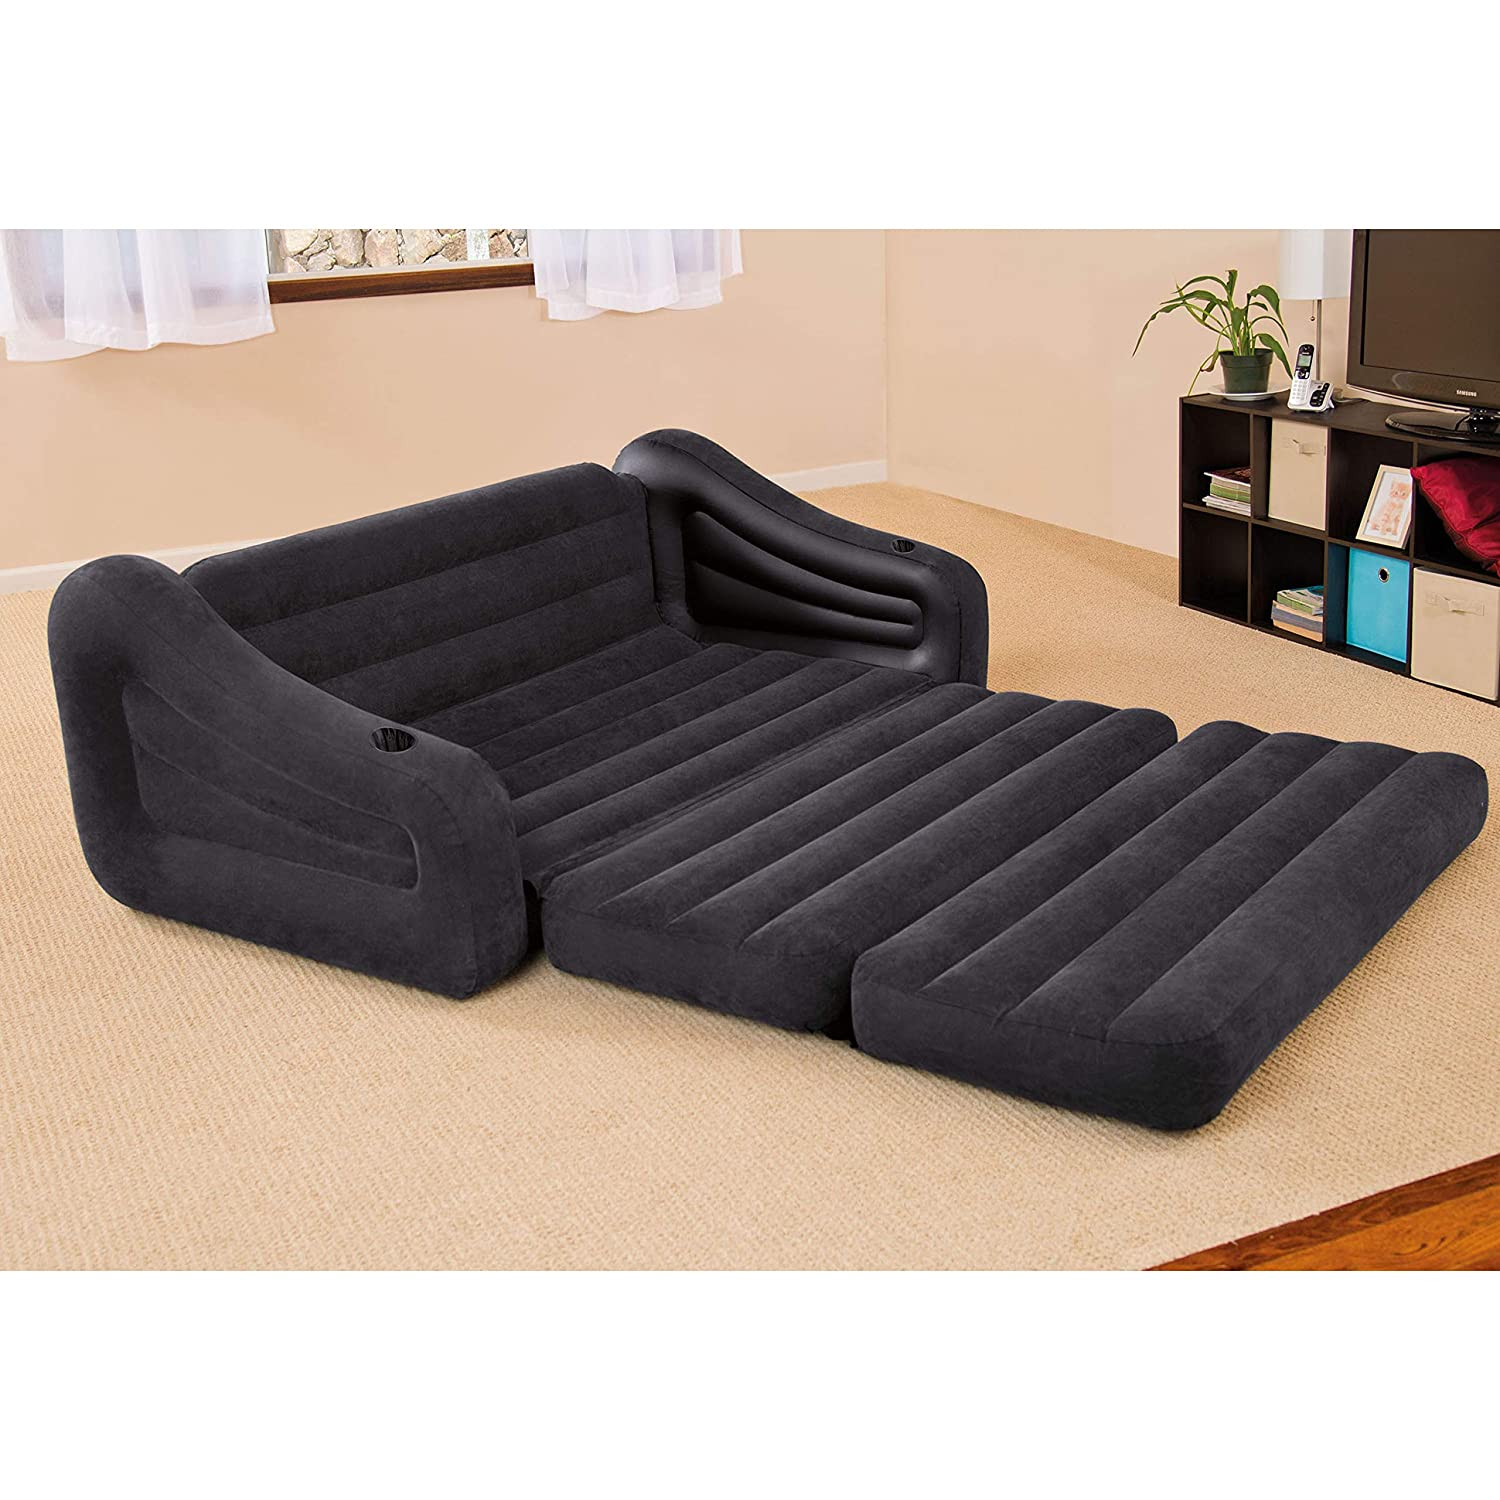 Intex Pull-out Sofa Inflatable Bed, 76